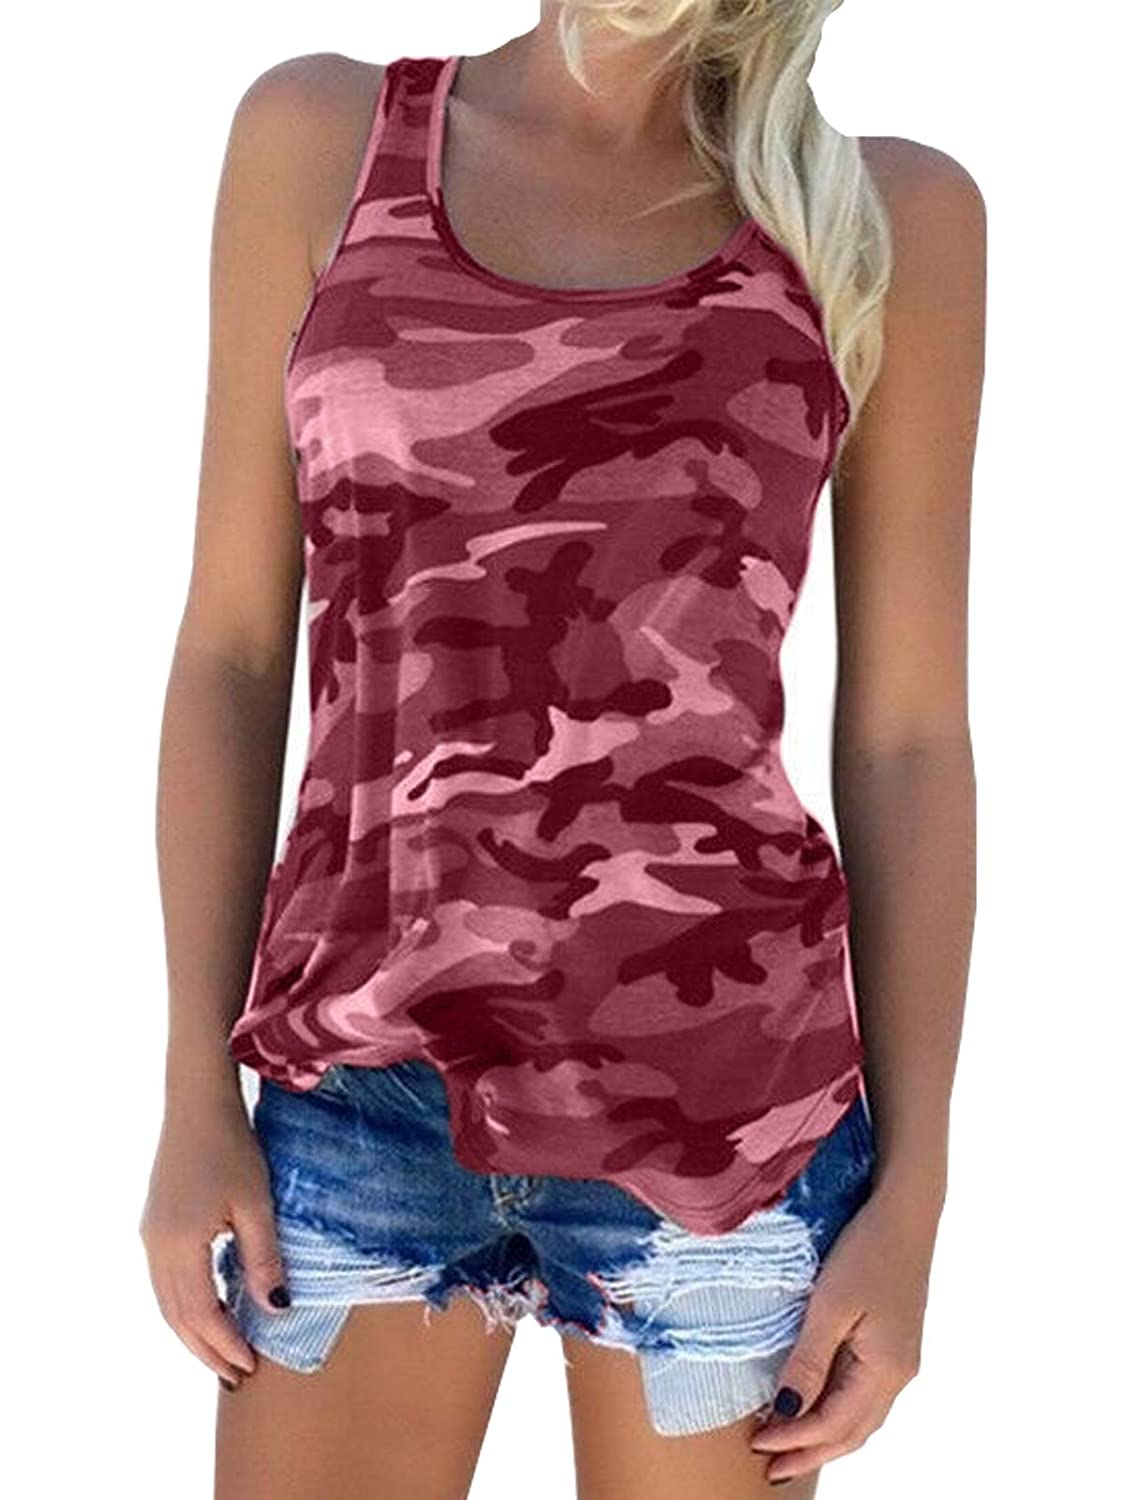 Zcavy Womens Activewear Tops Camouflage Print Cotton Stretchy Tee Racerback Tanks Tops